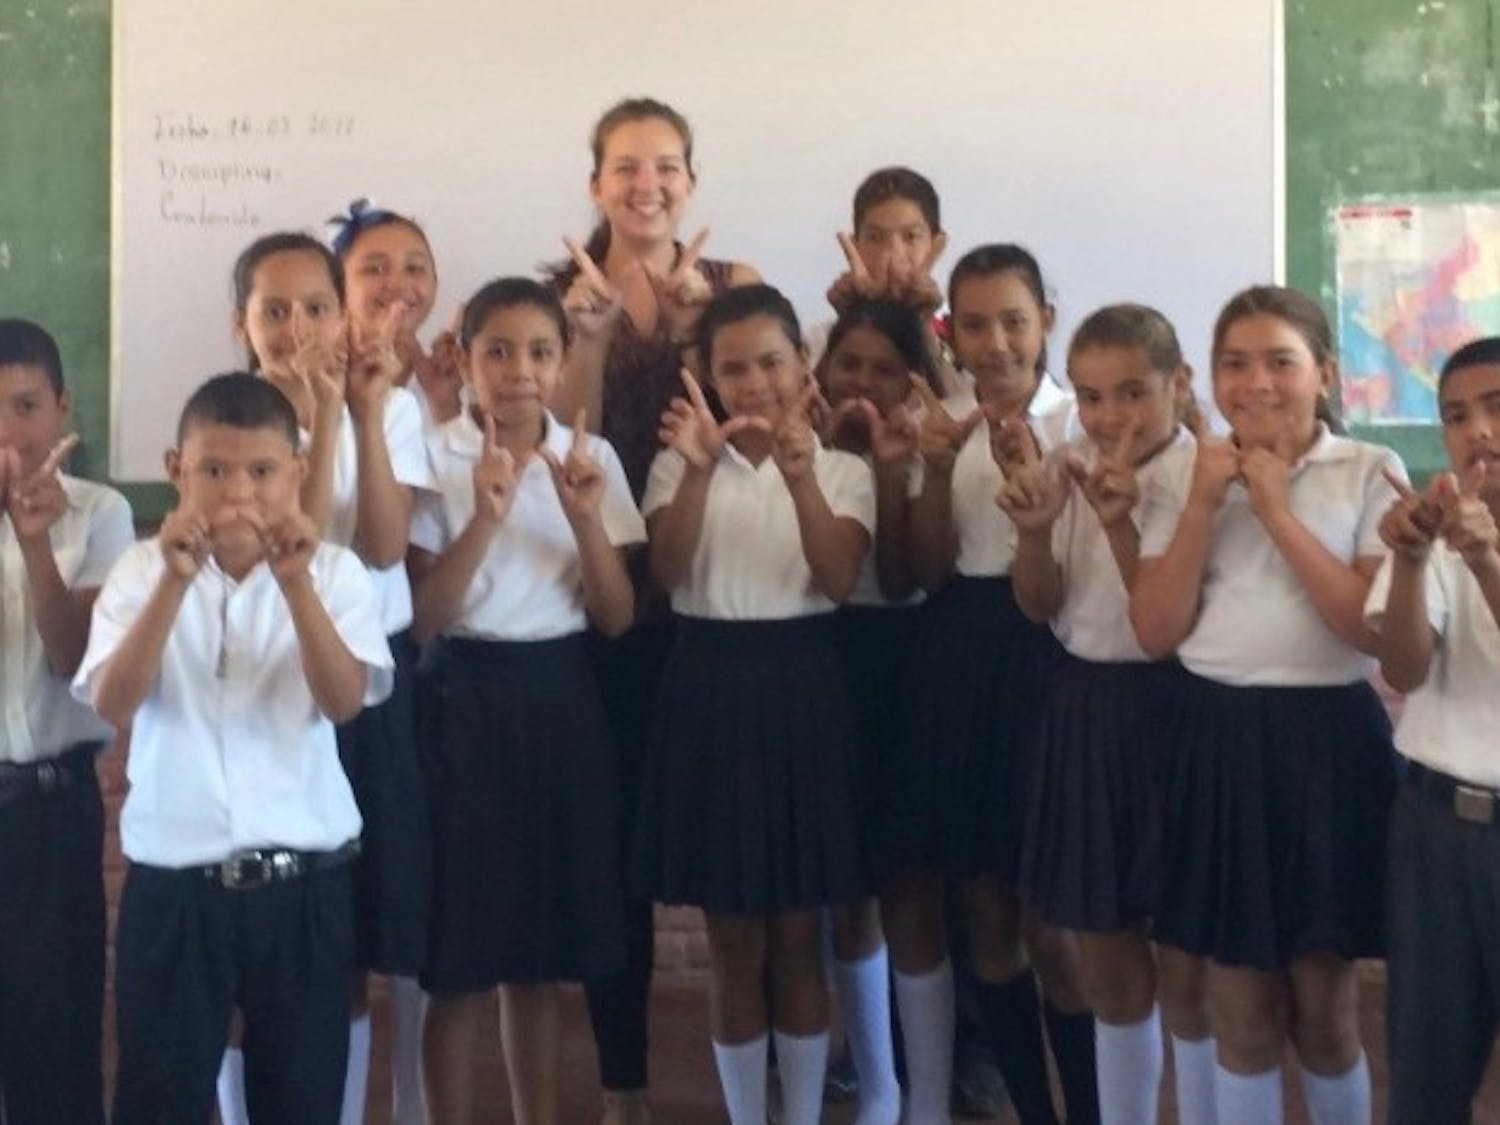 Laura Linde, a 2014 UW-Madison graduate and Peace Corps volunteer, with her group of Peace Corps Nicaragua students.